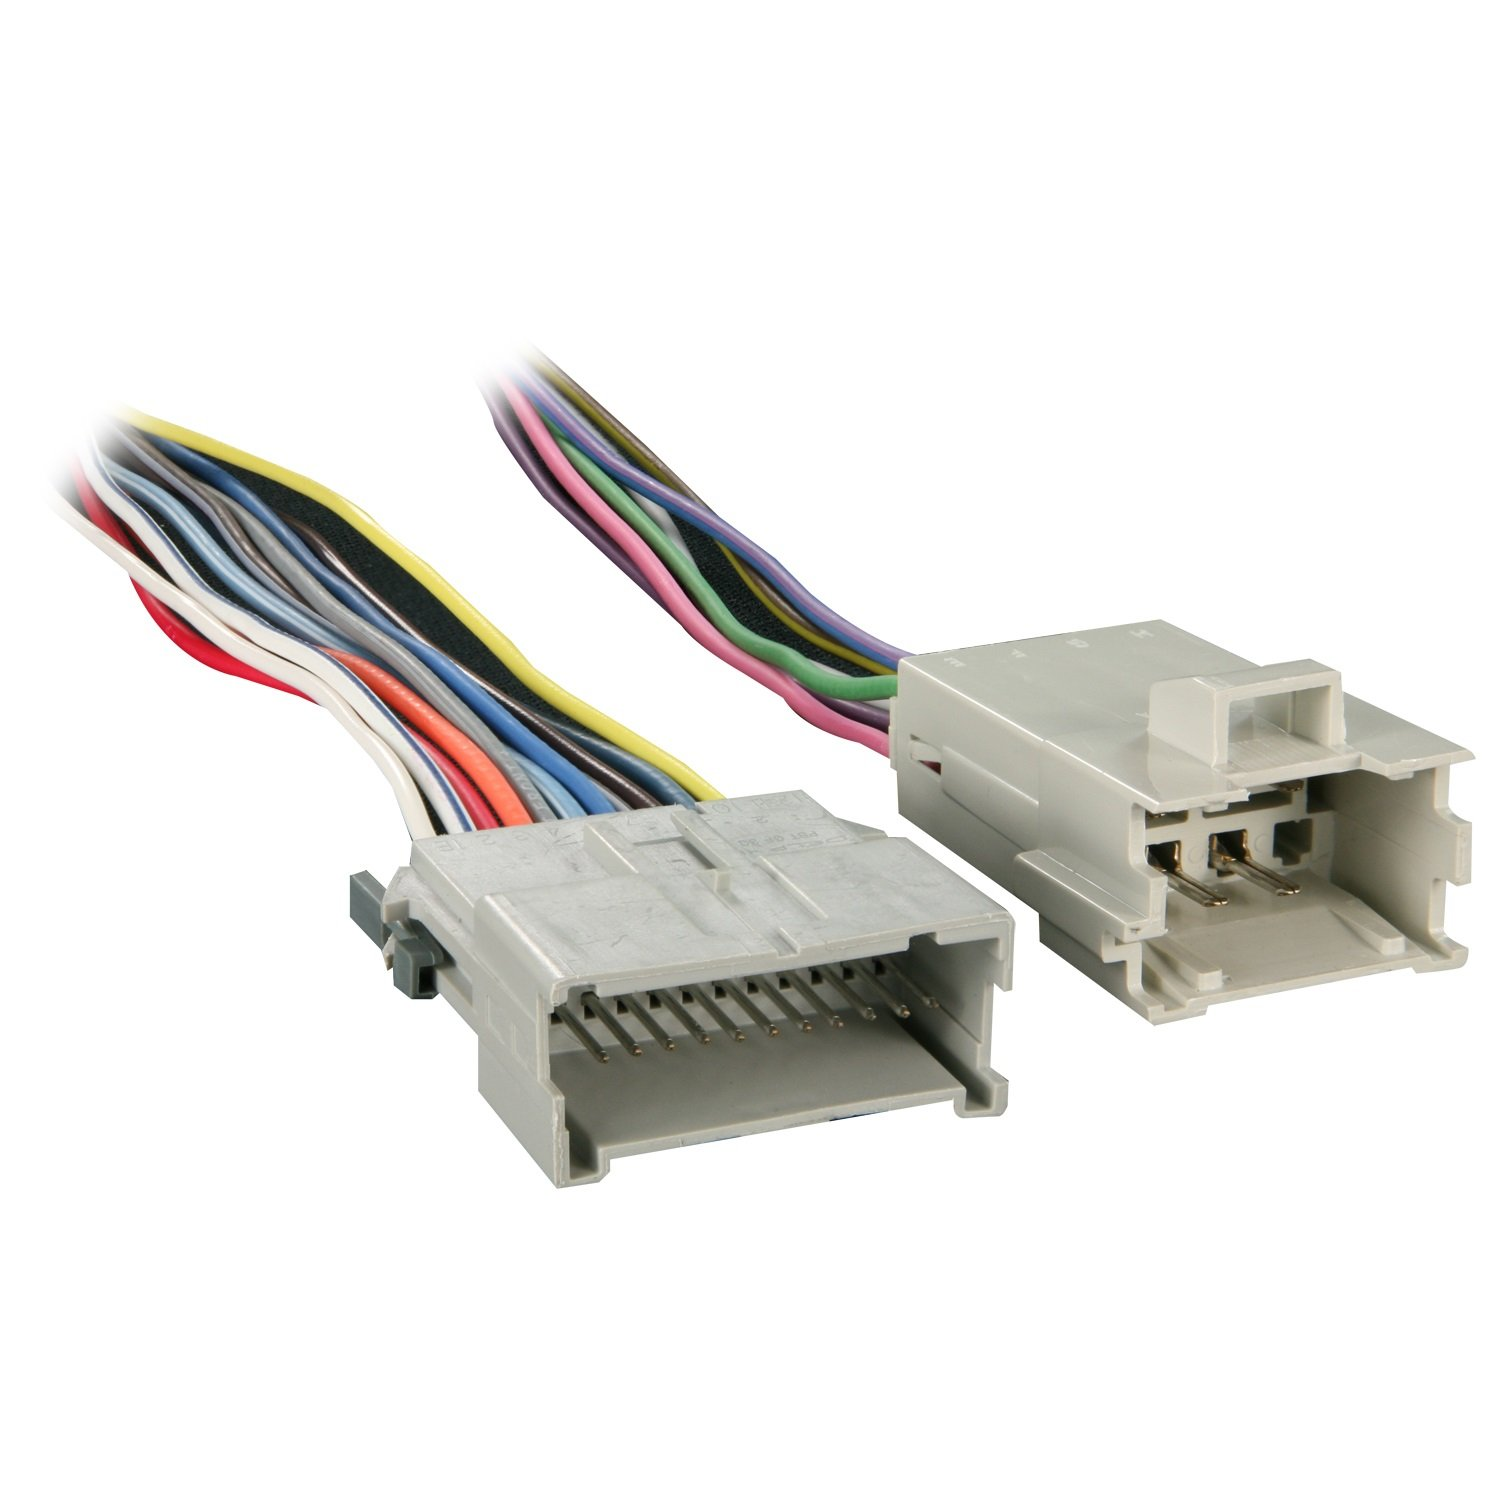 71gEc%2BOPJ8L._SL1500_ amazon com metra 70 2054 factory amplifier bypass harness for GM Wiring Color Codes at nearapp.co